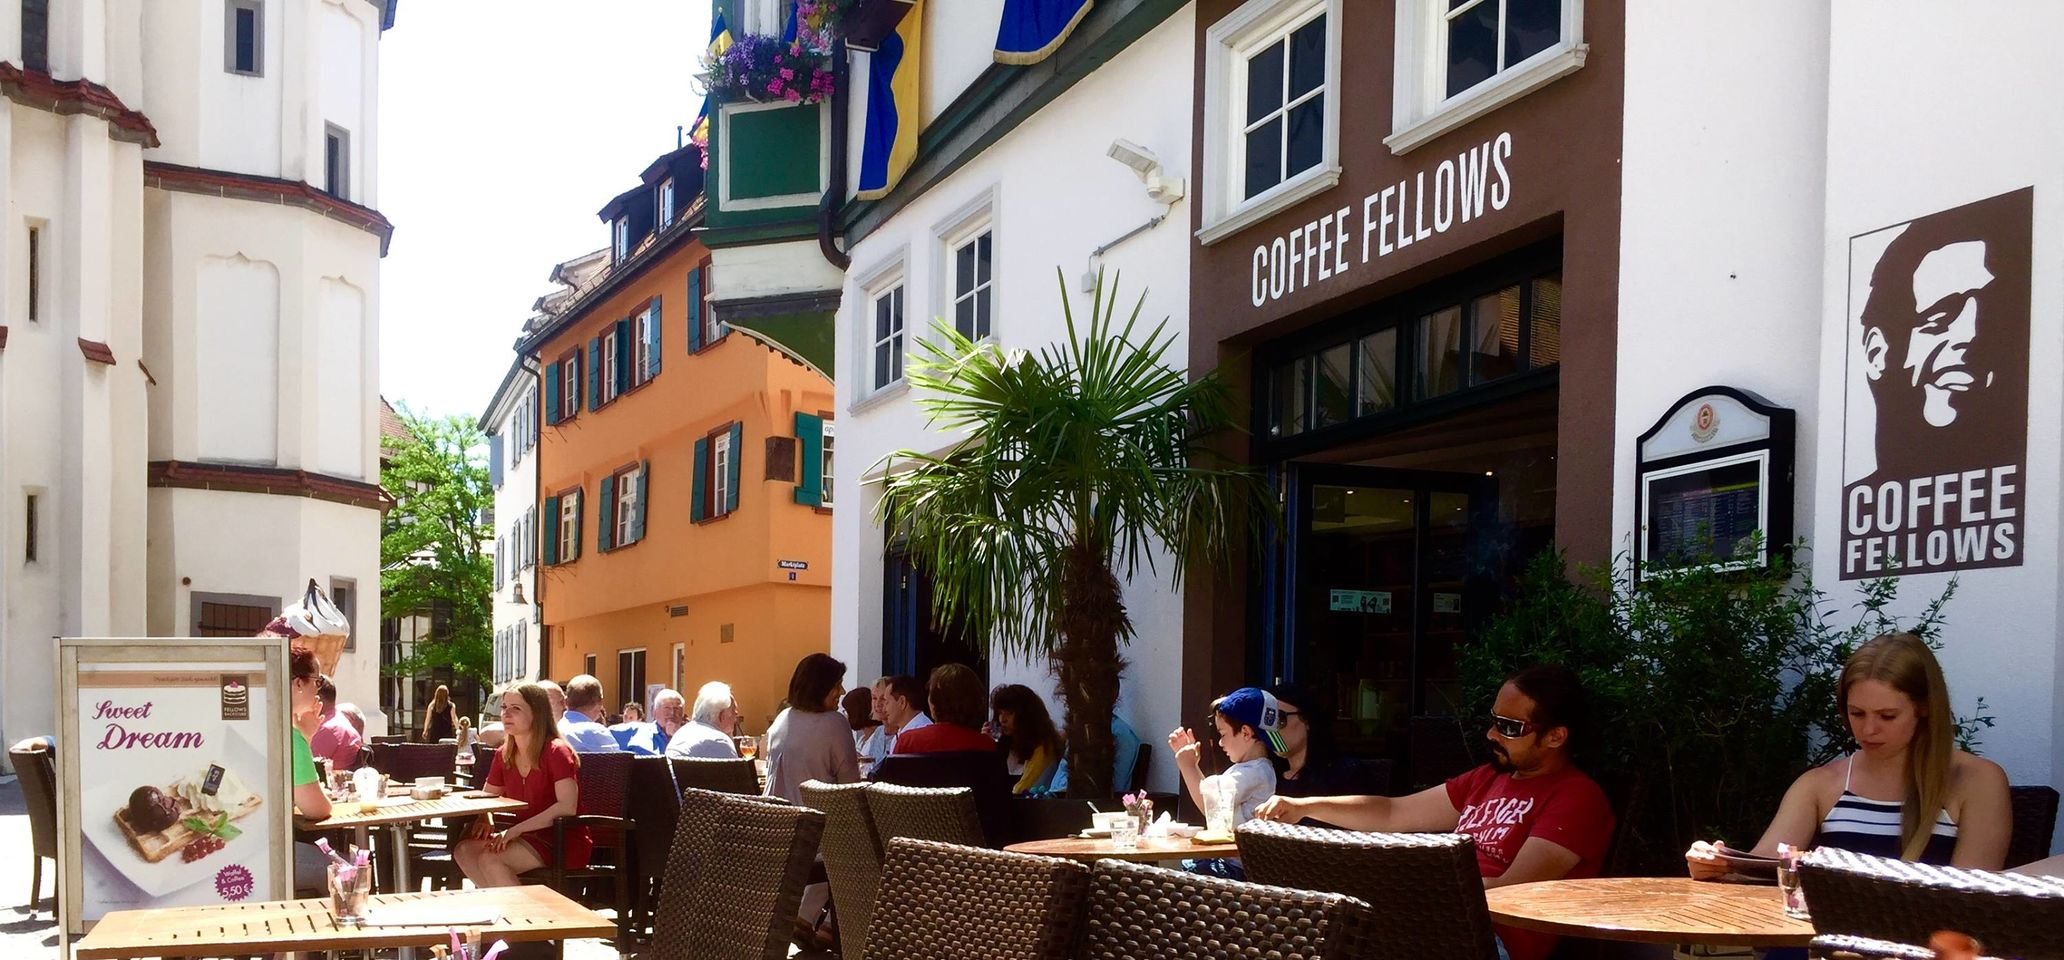 A photo of Coffee Fellows, Marktplatz